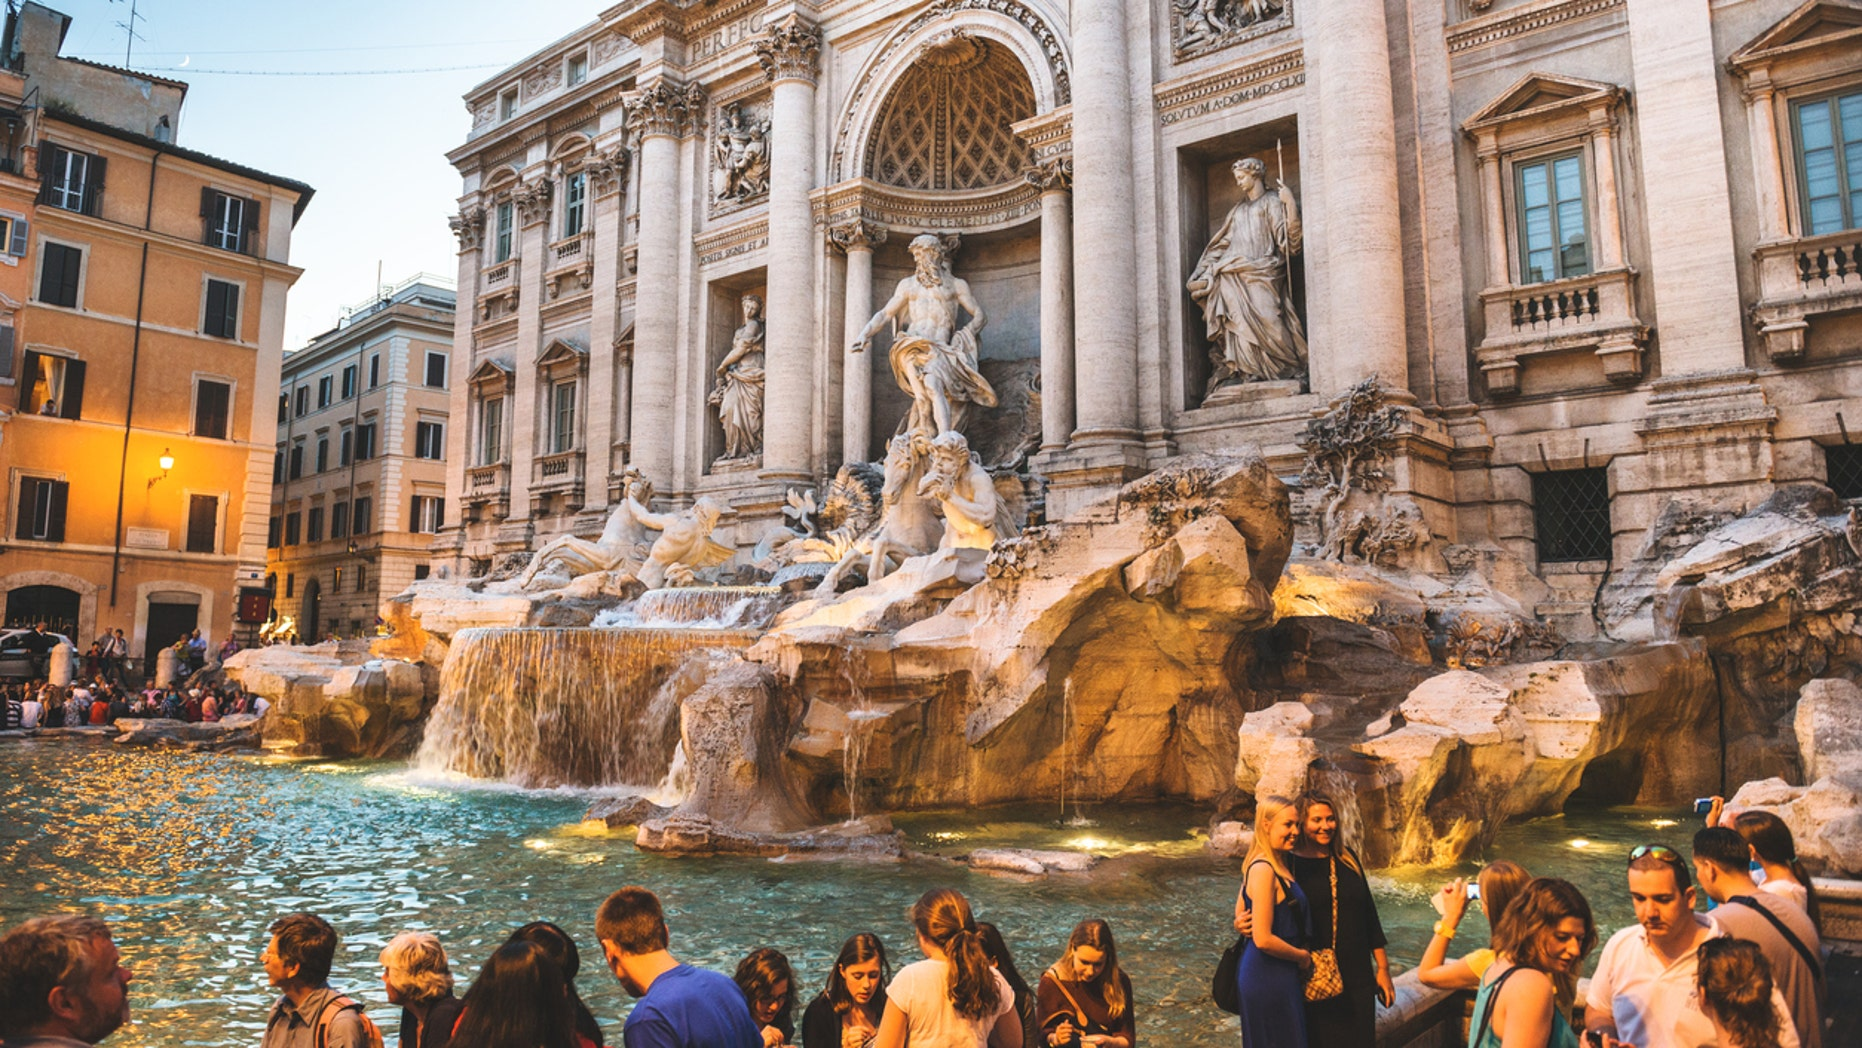 Rome's Trevi Fountain is a popular location for a quick selfie.